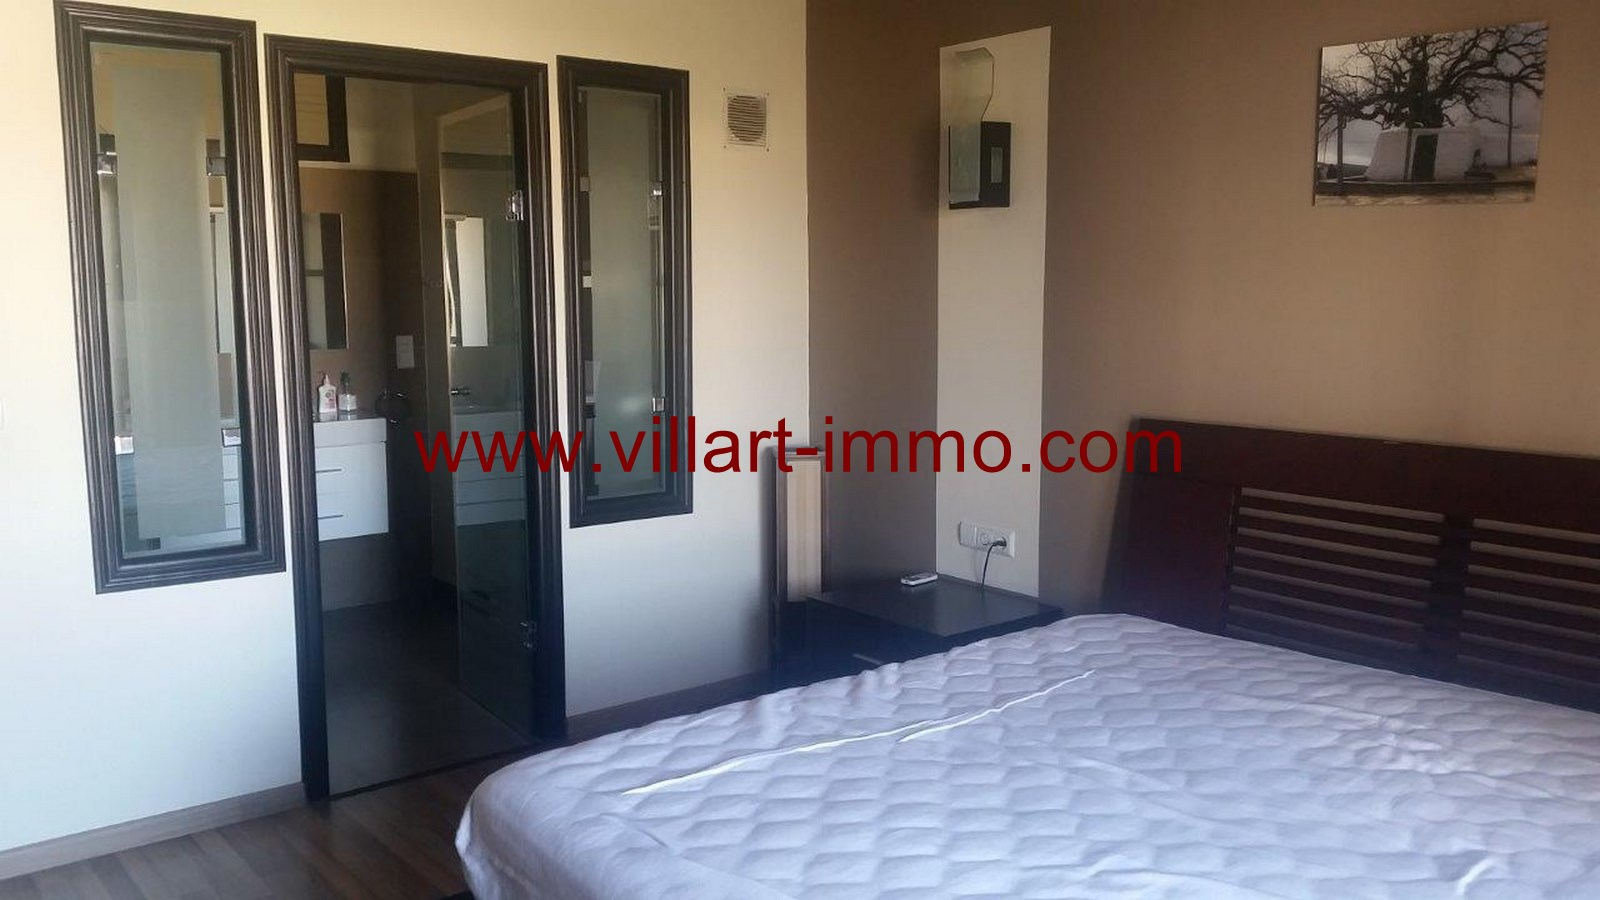 15-To Let-Villa-Furnished-Tangier-Bedroom 3 -LSTV986-Villart-Immo